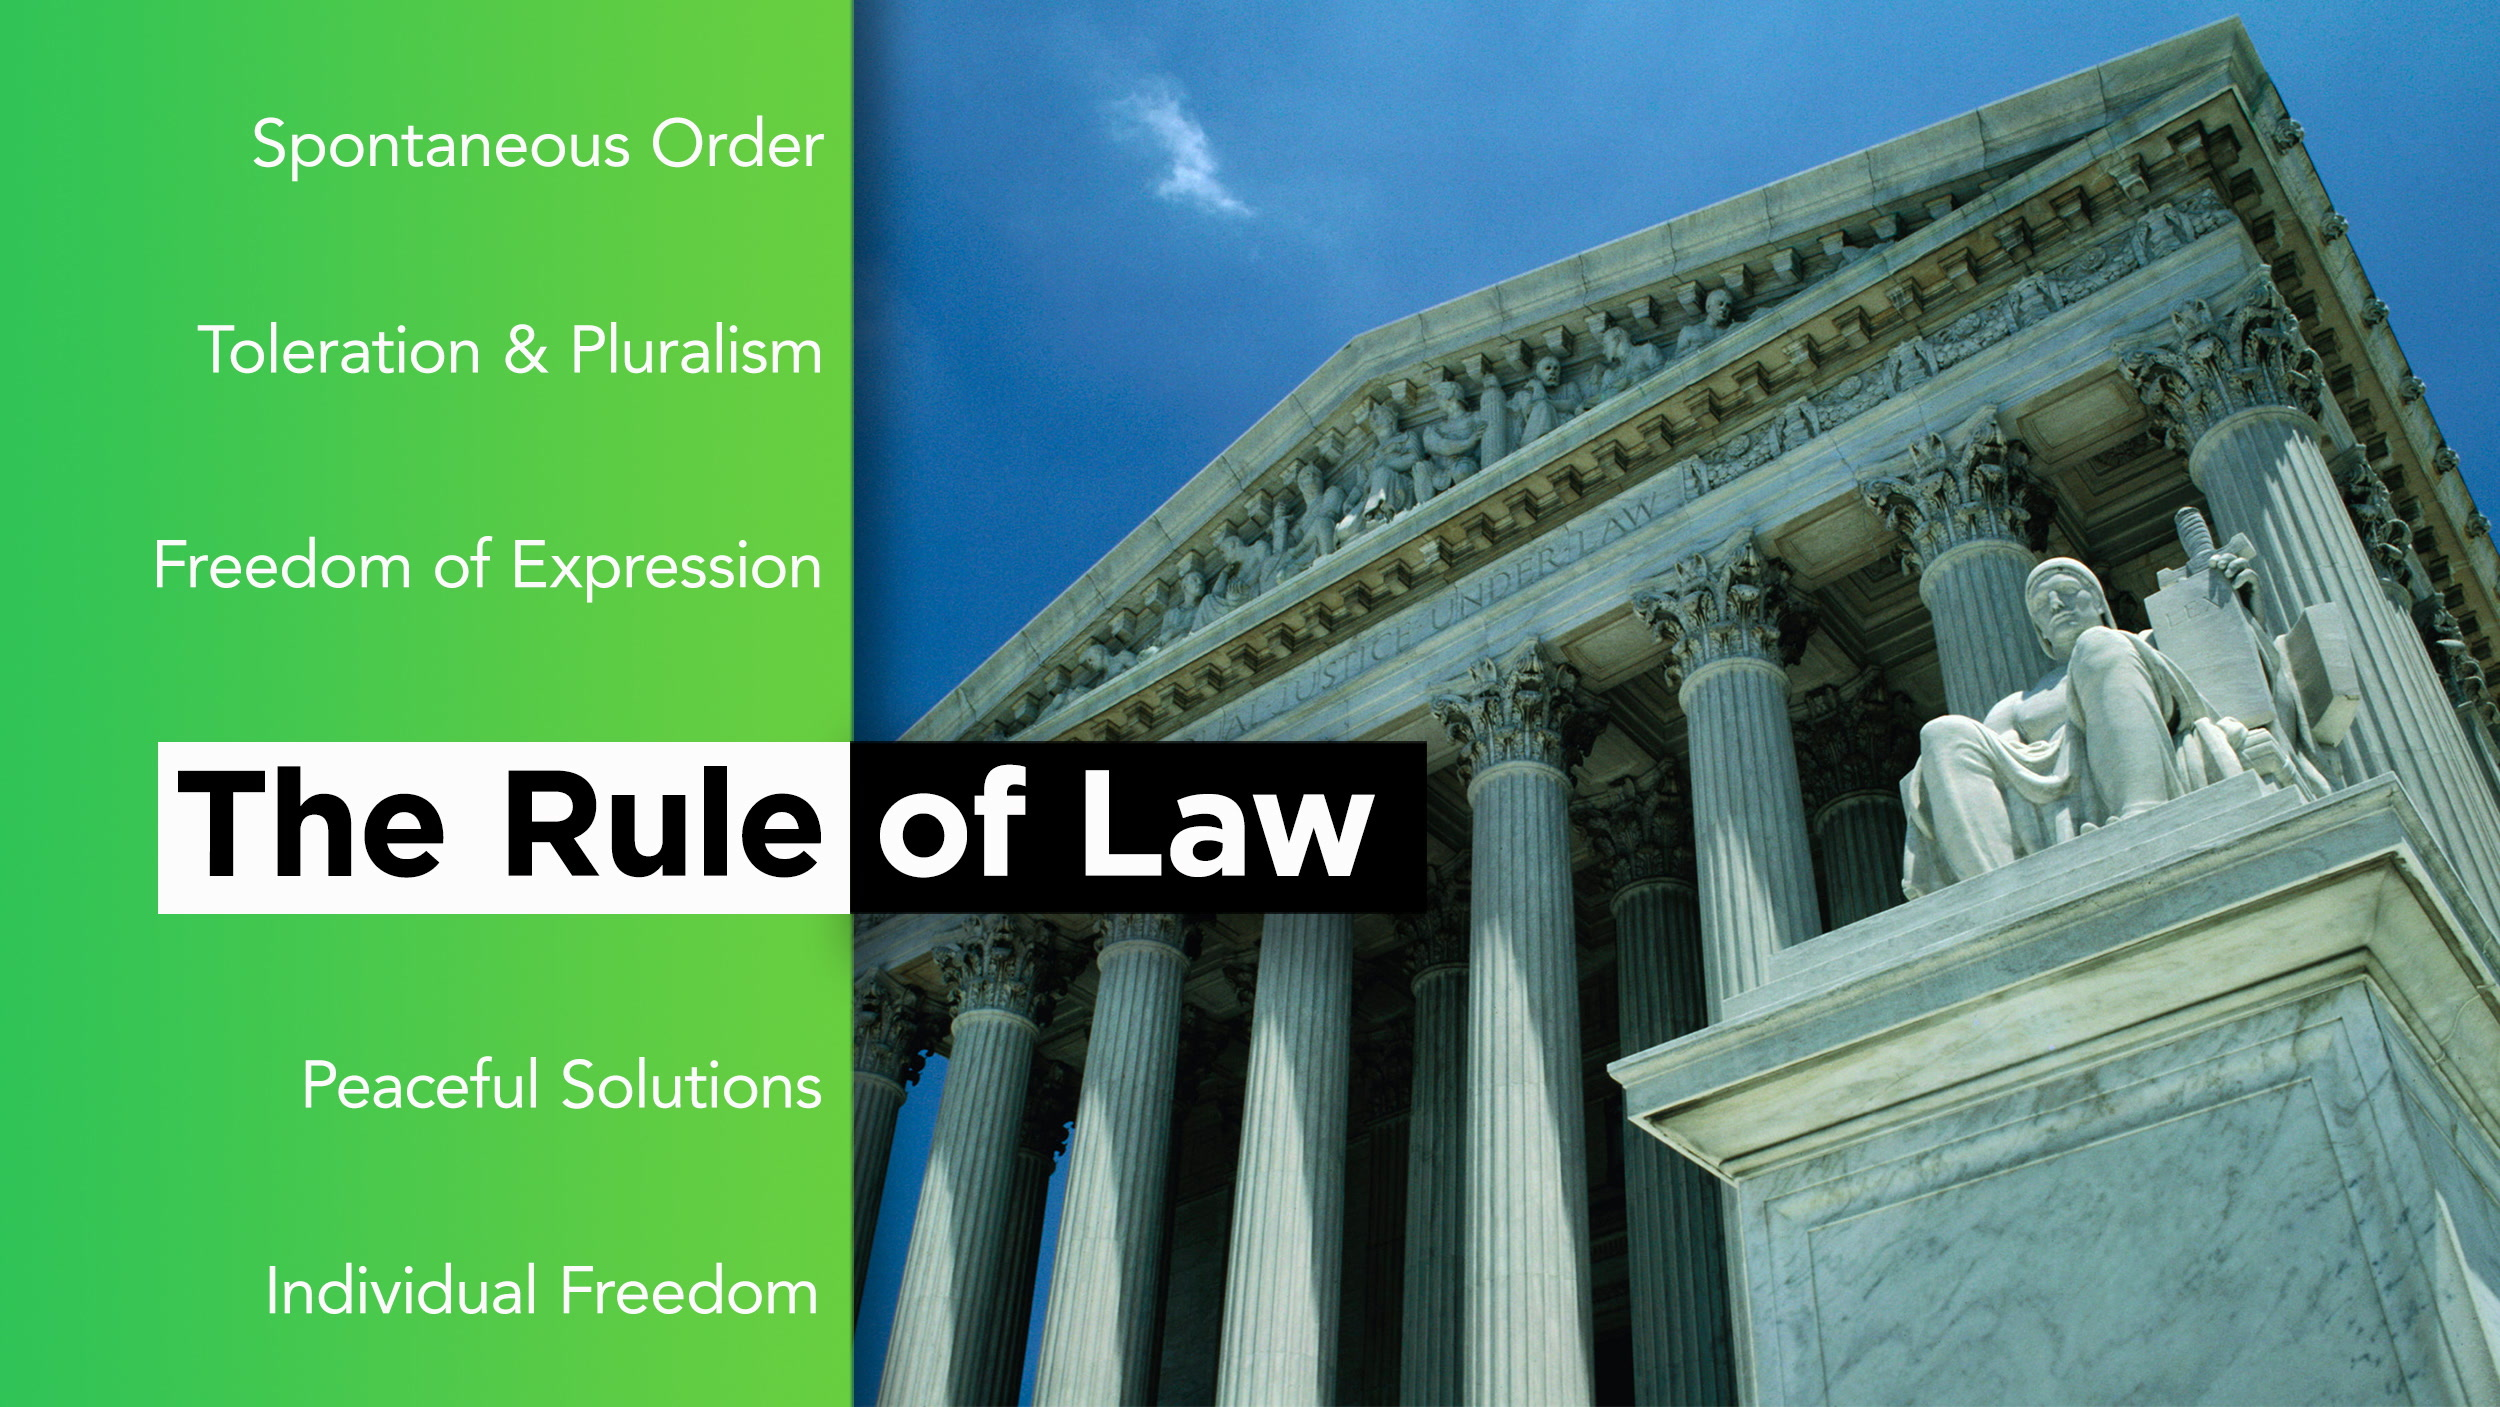 How does the rule of law promote a free society?